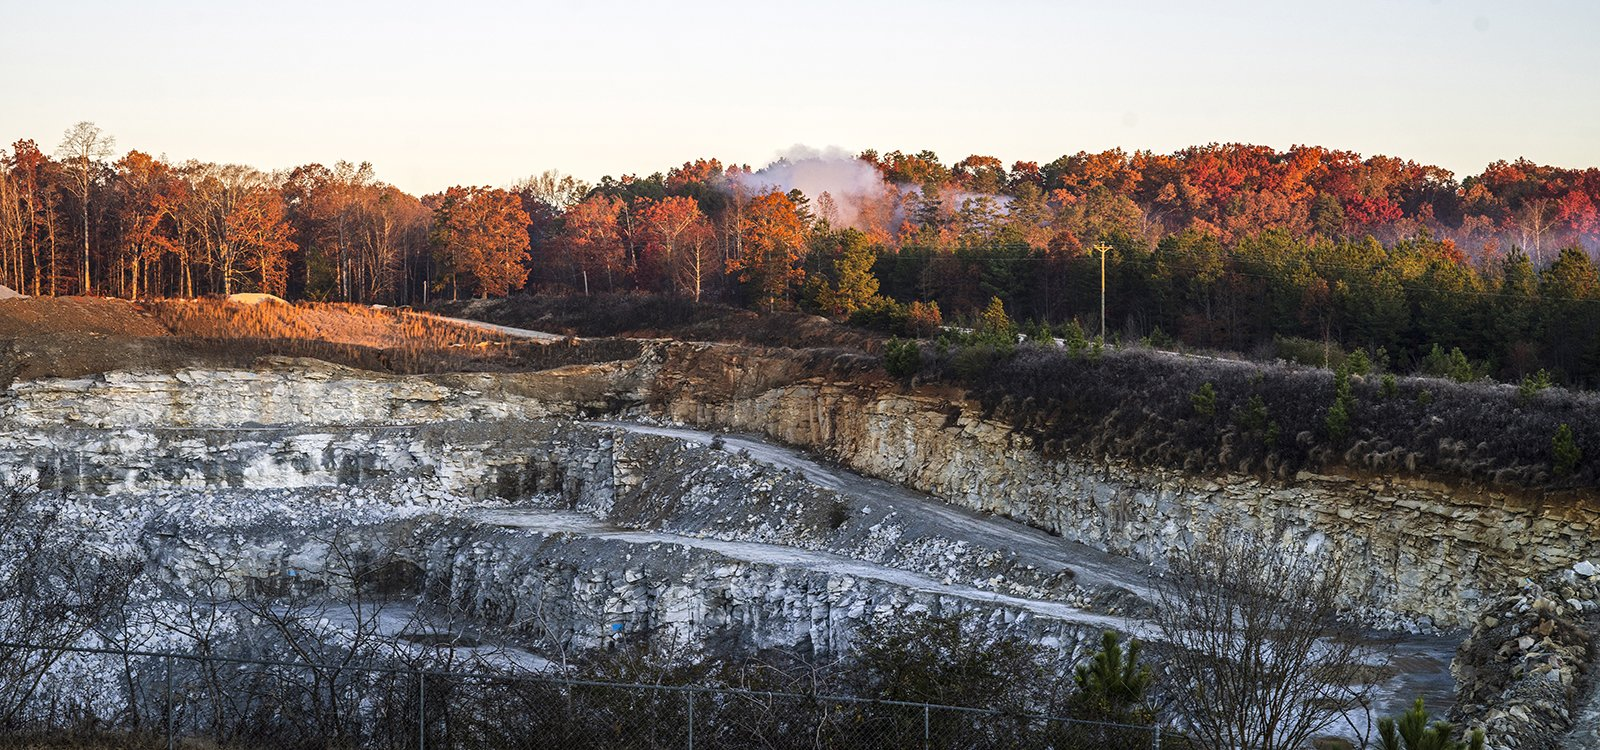 The quarry produces blue granite, South Carolina's state rock.